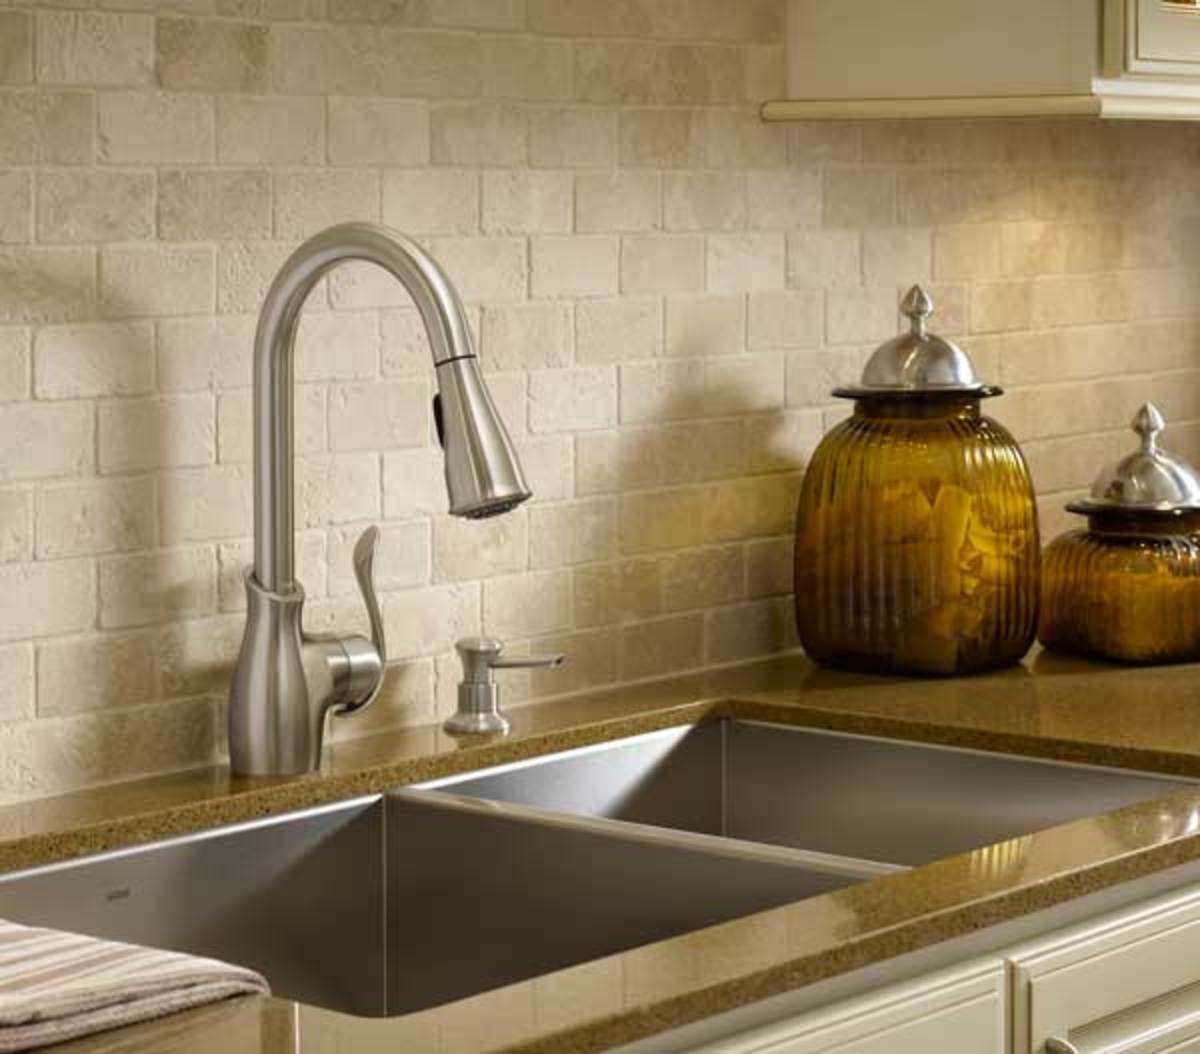 Harrington Brass Works Kitchen Faucets